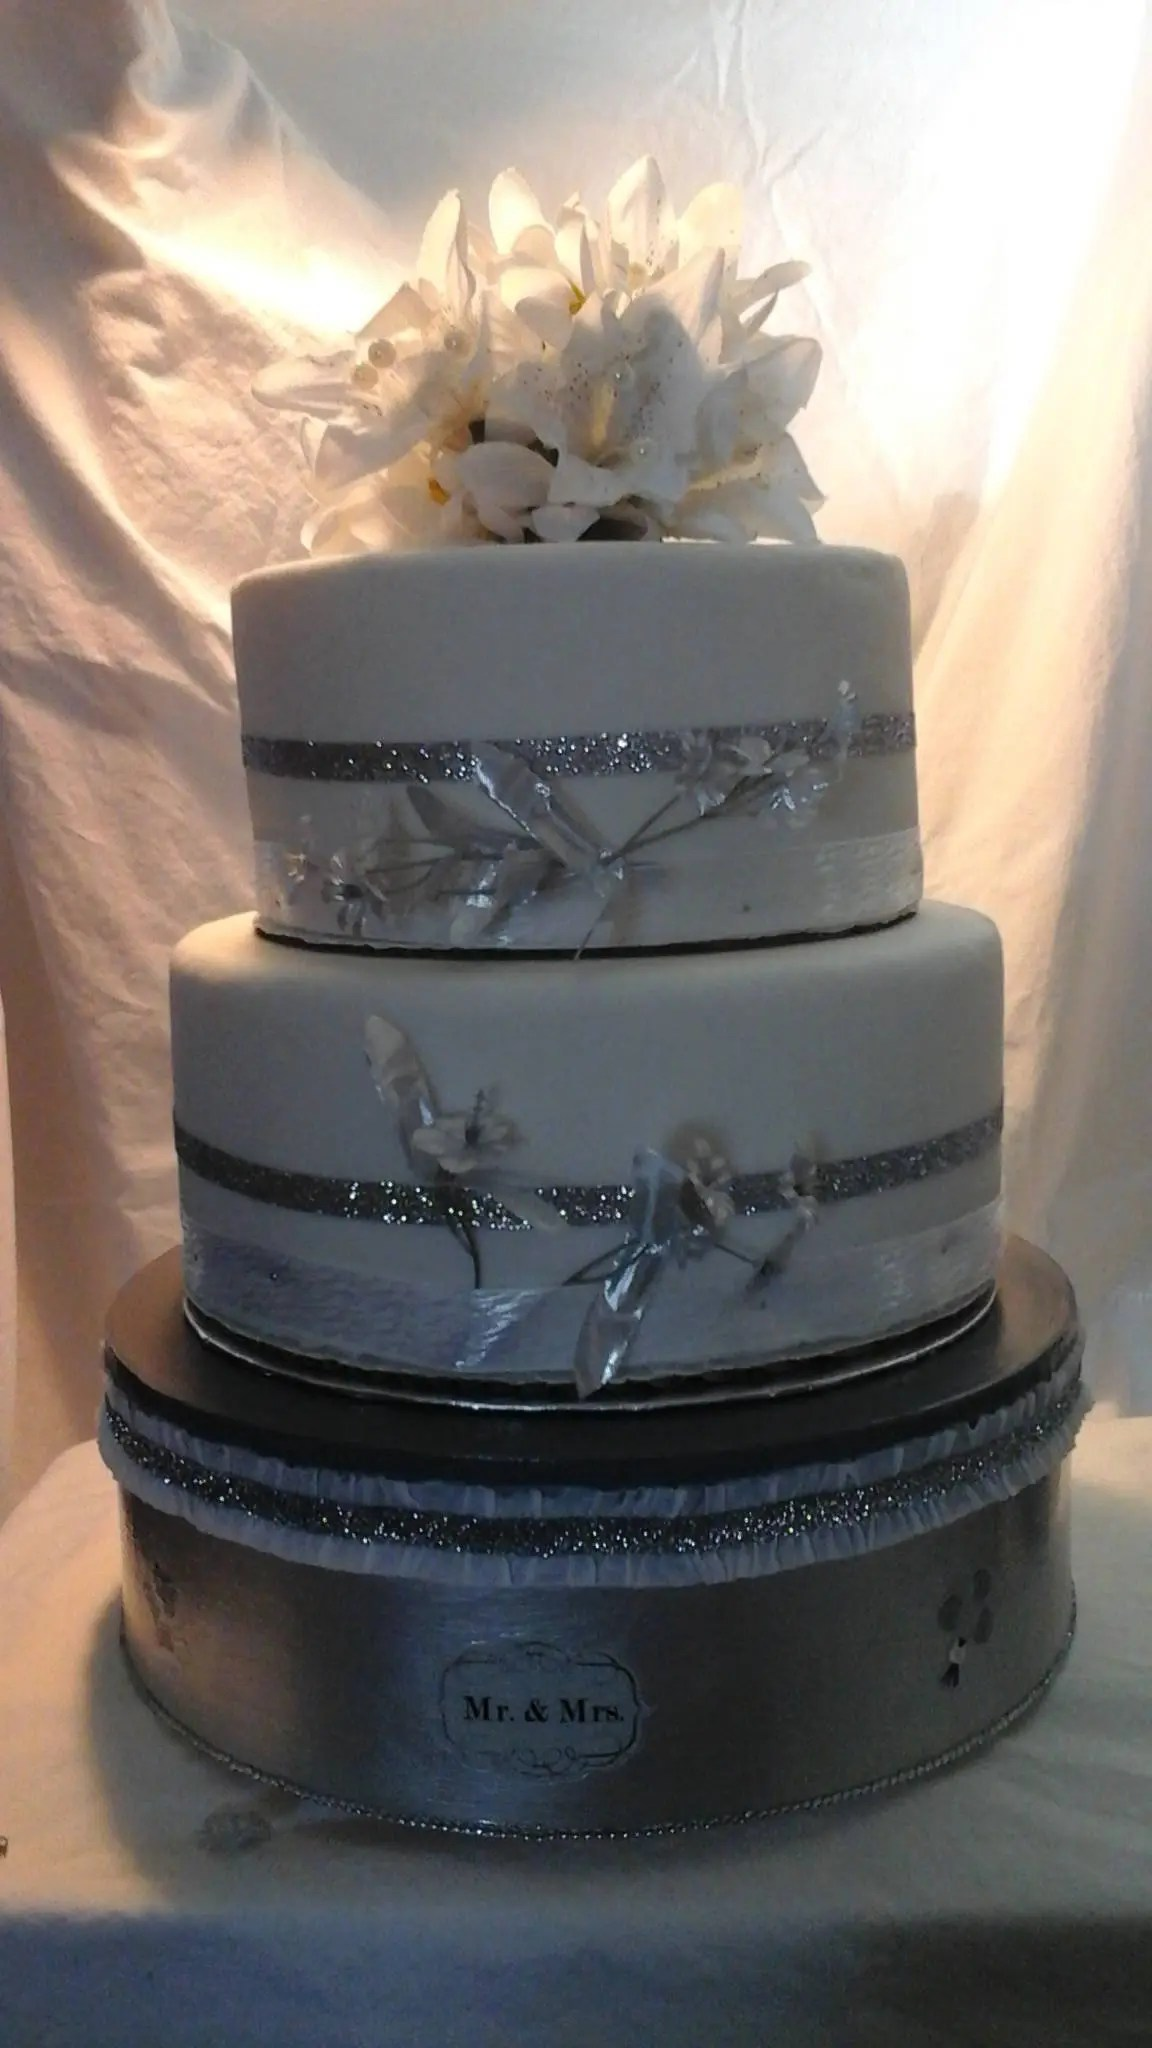 12 Metallic silver Wedding cake stand 12  Metallic silver Wedding cake stand